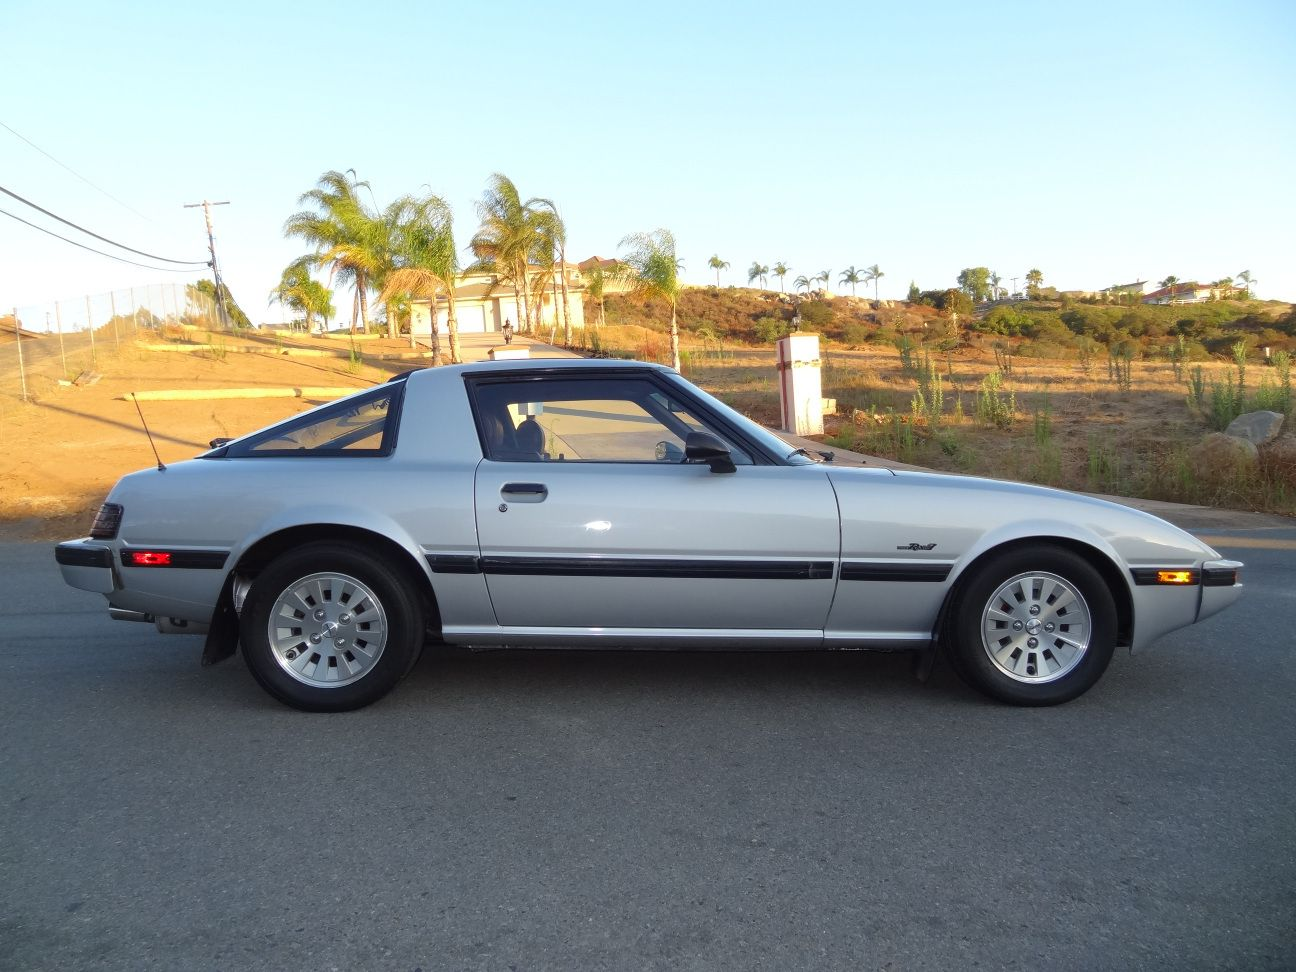 1984 1985 mazda rx7 gsl se in the final 2 years of the